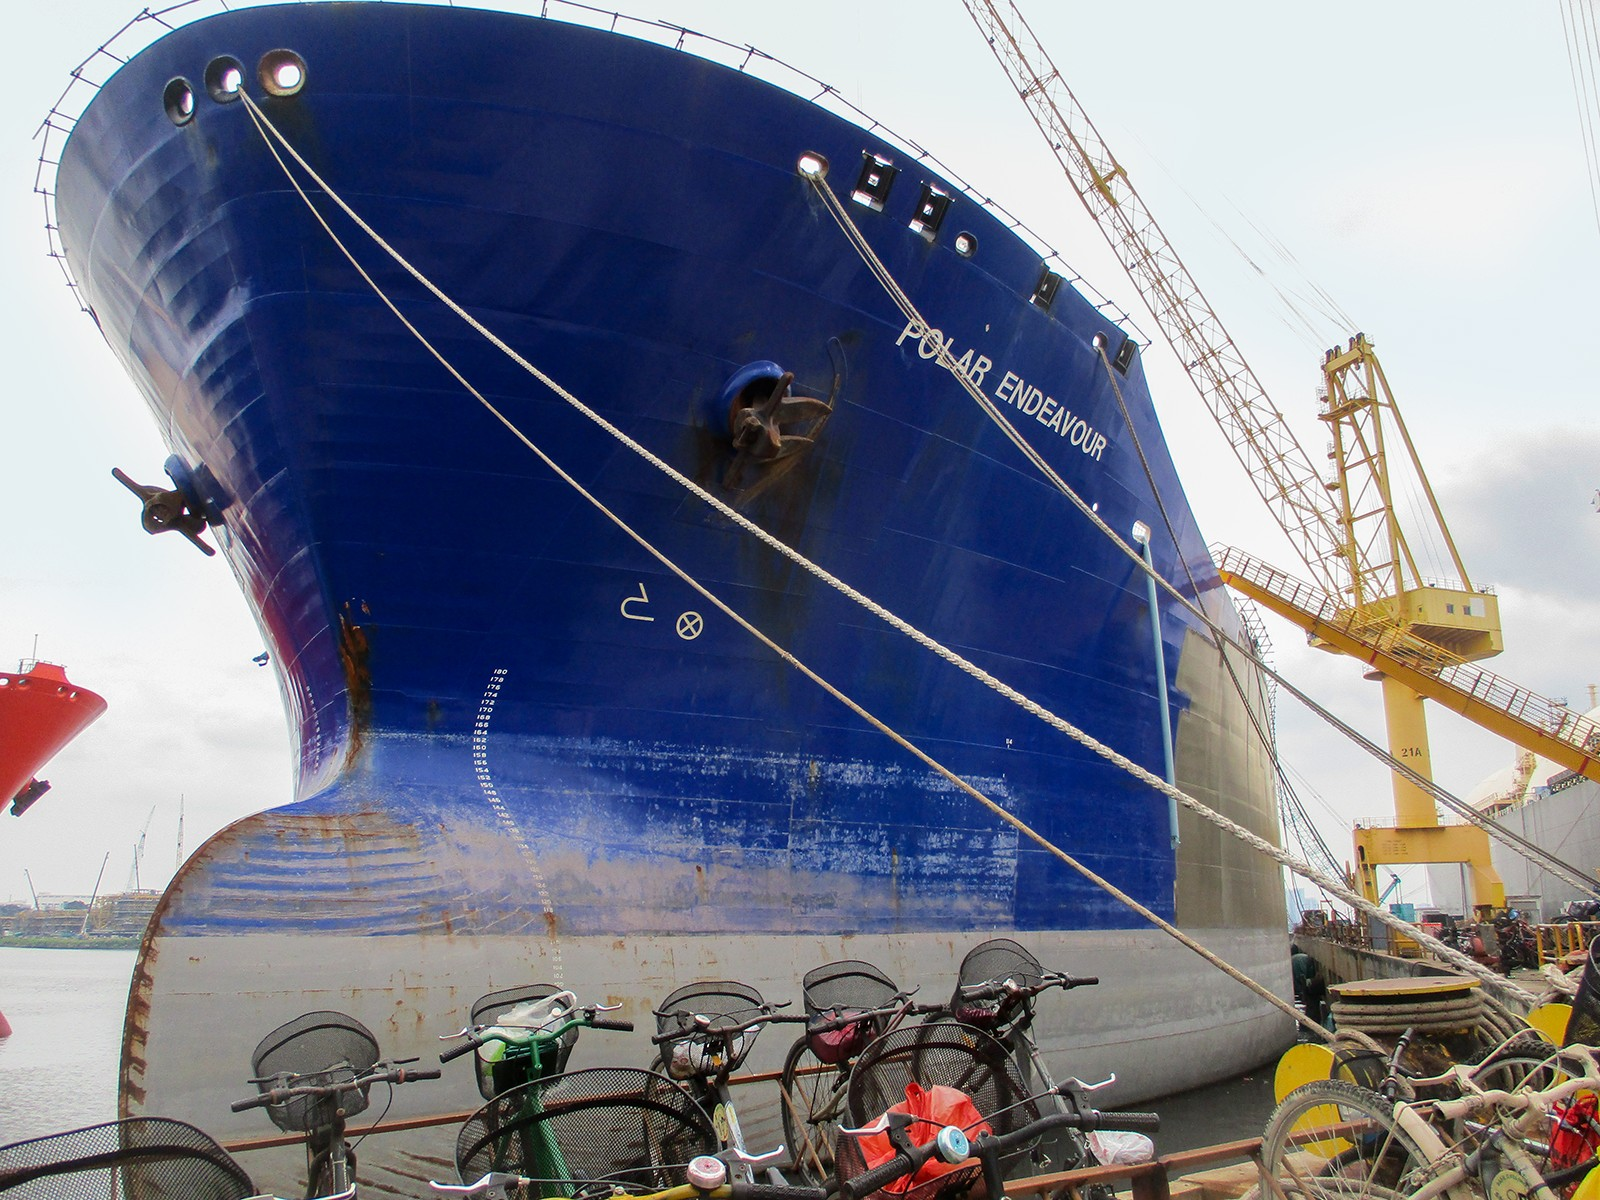 view of ship's bow looking upward from dock, bicycles parked in foreground